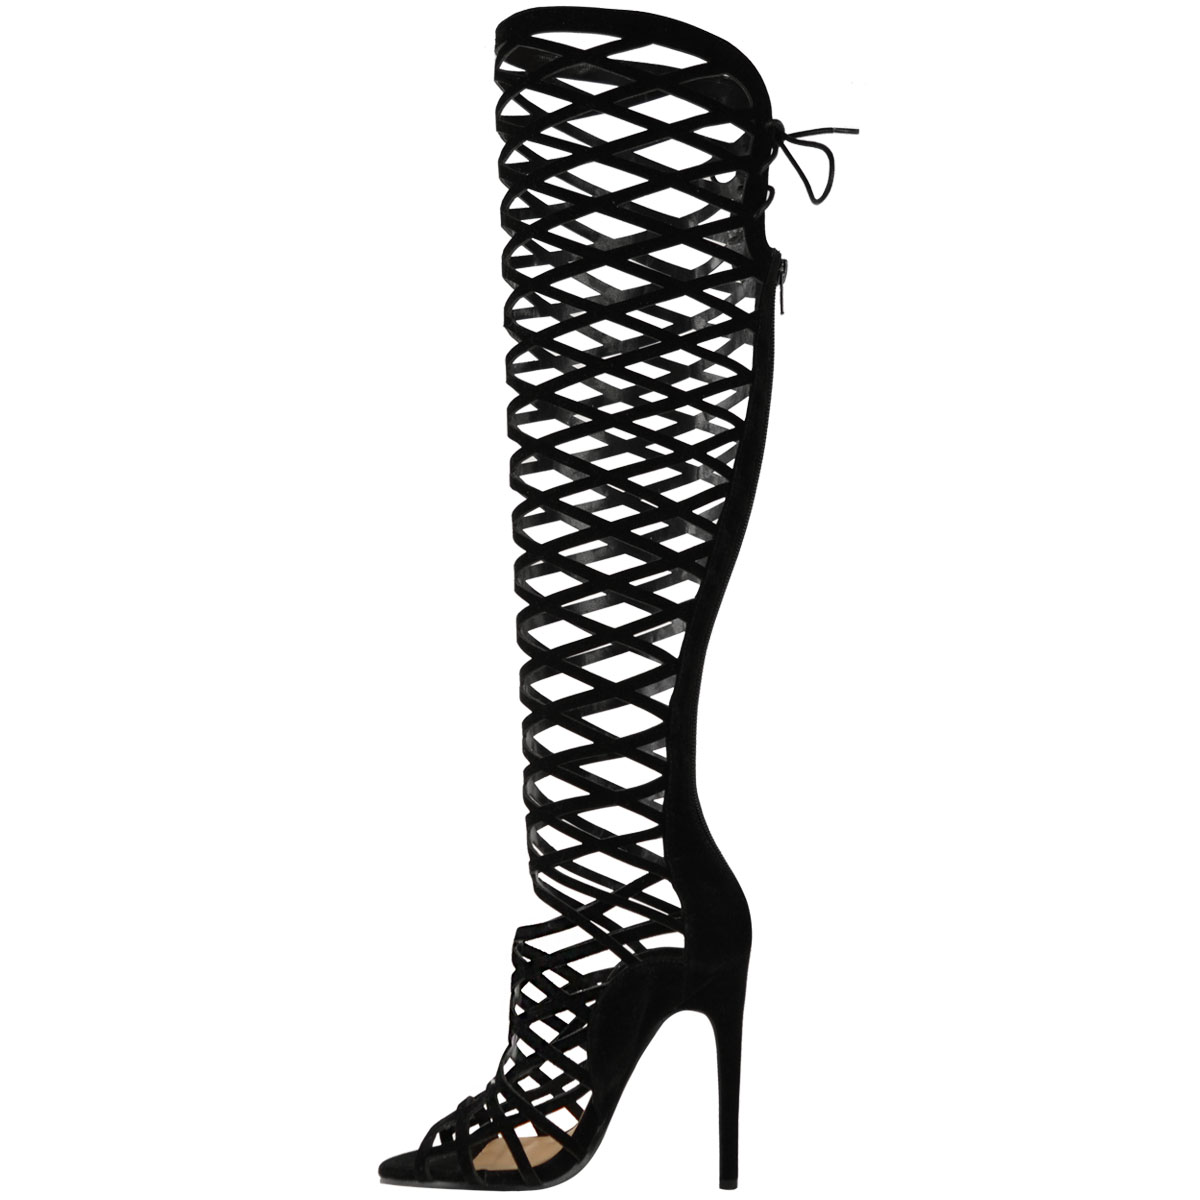 Gladiator Knee High Heels 4RrUrrfB